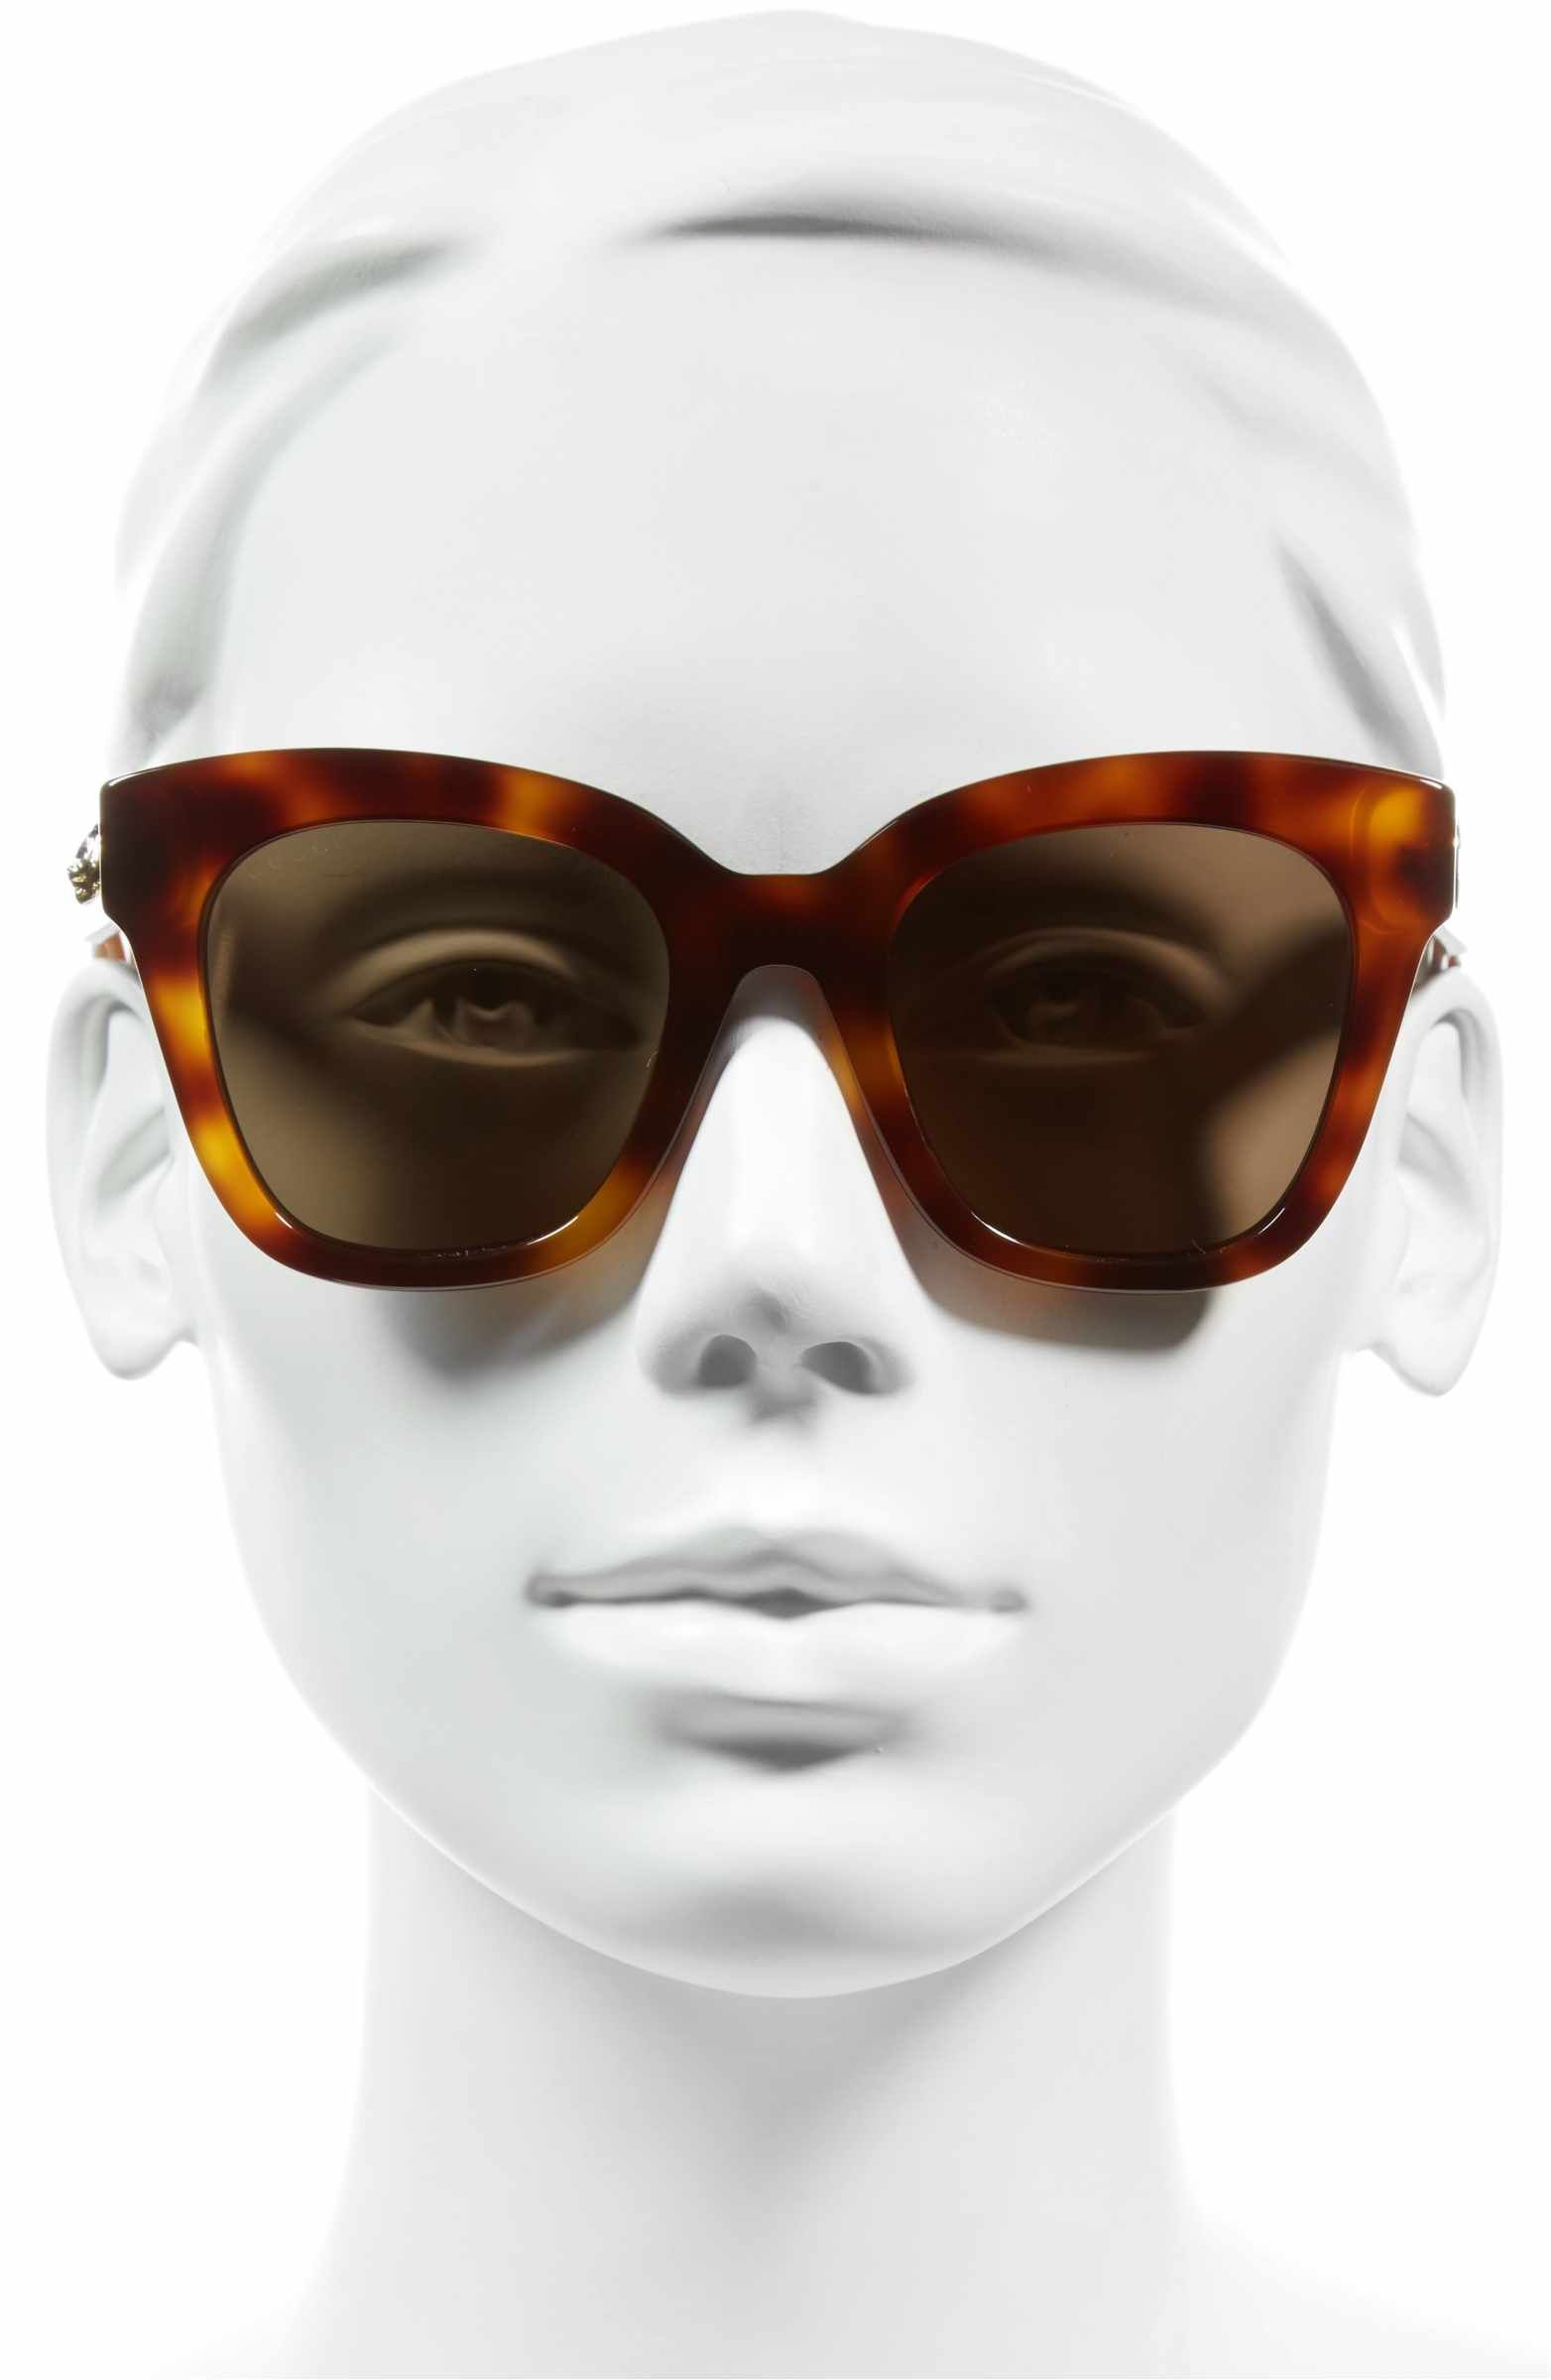 a118a2775 Main Image - Gucci 50mm Cat Eye Sunglasses | sunshades | Cat eye ...